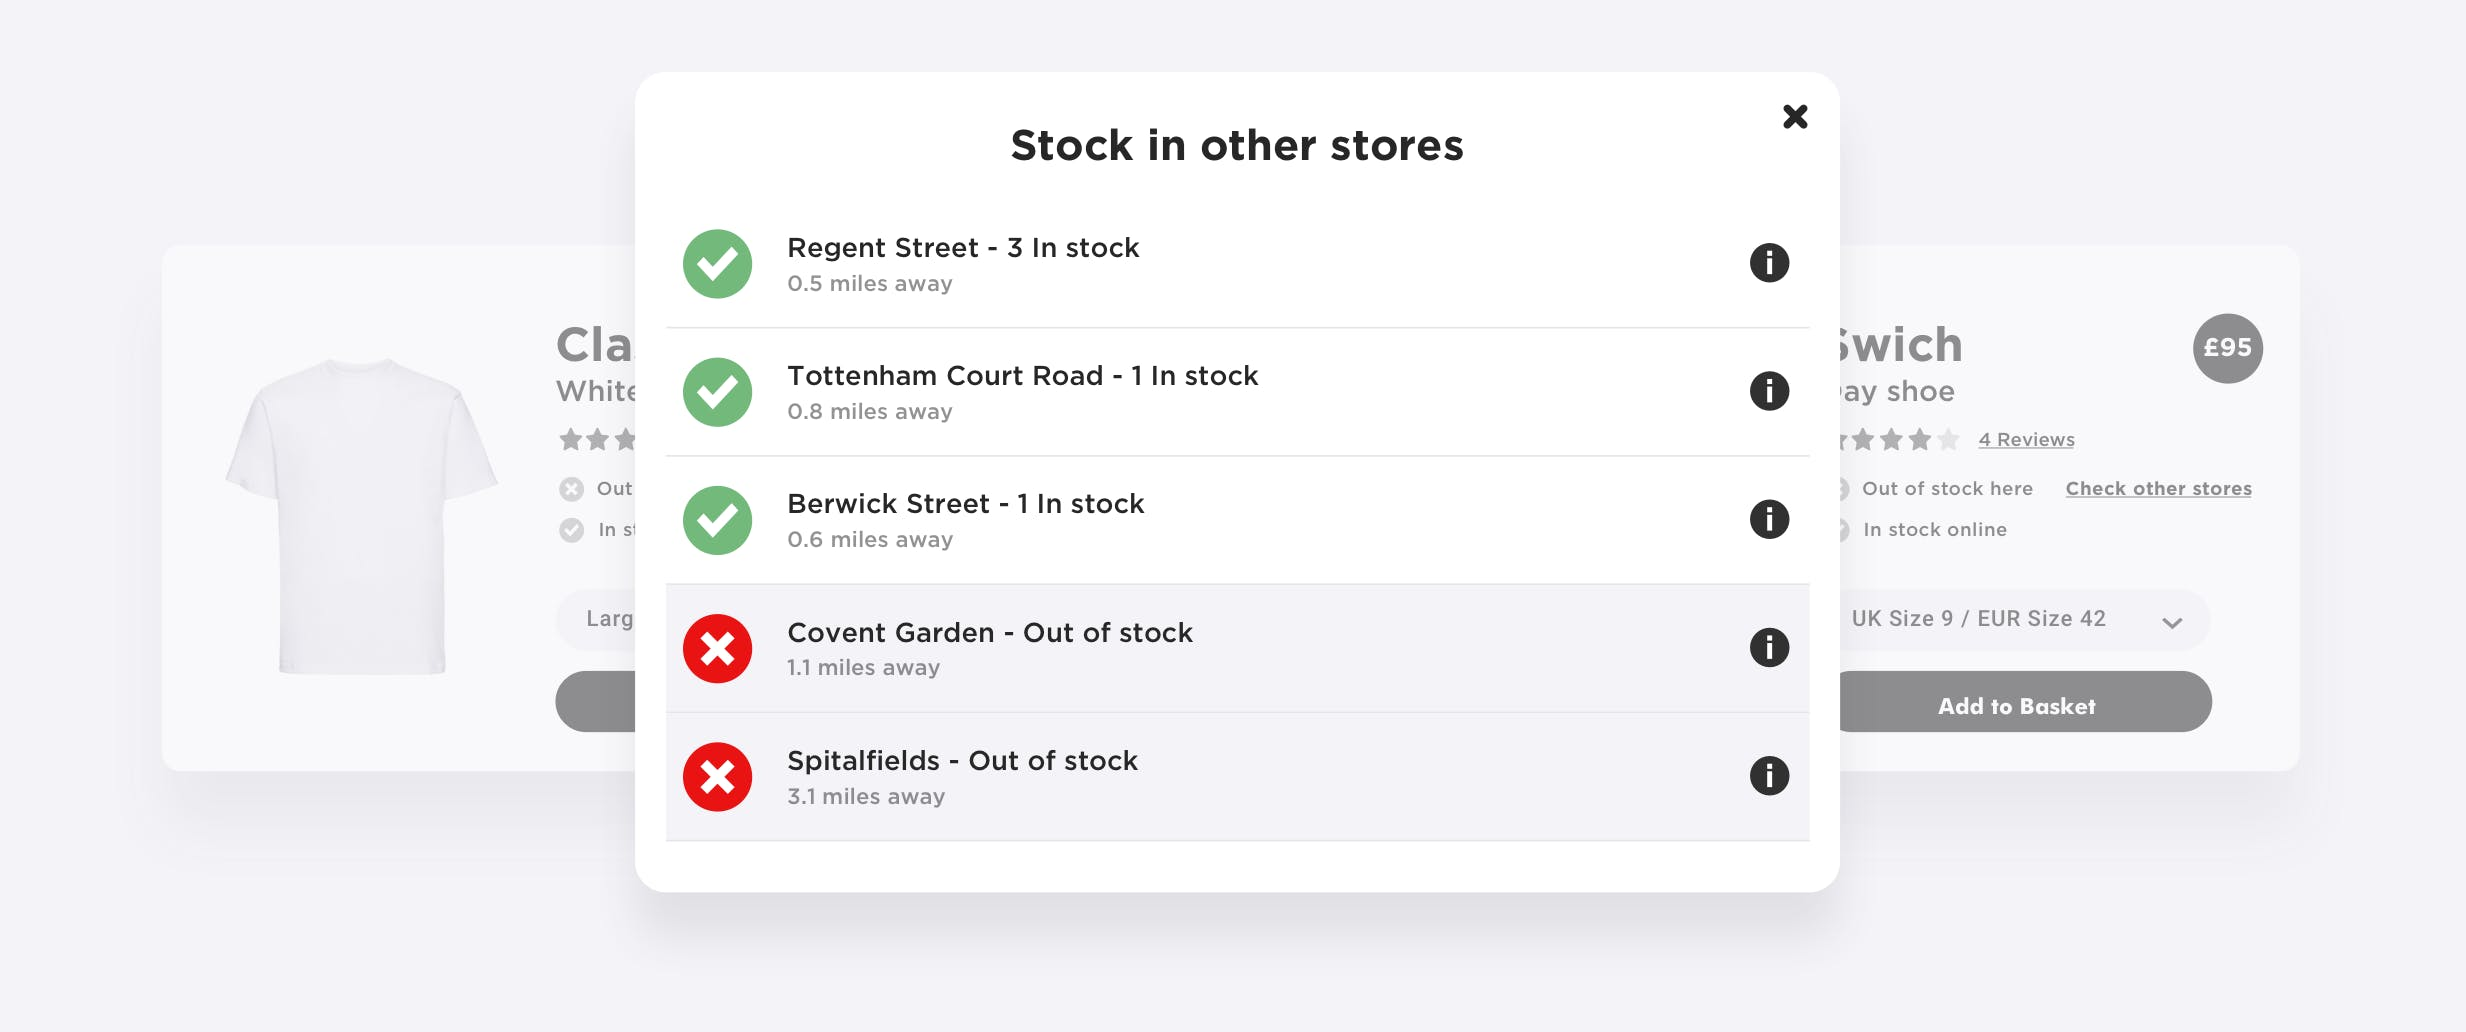 RetailOS inventory information and online ordering in-store